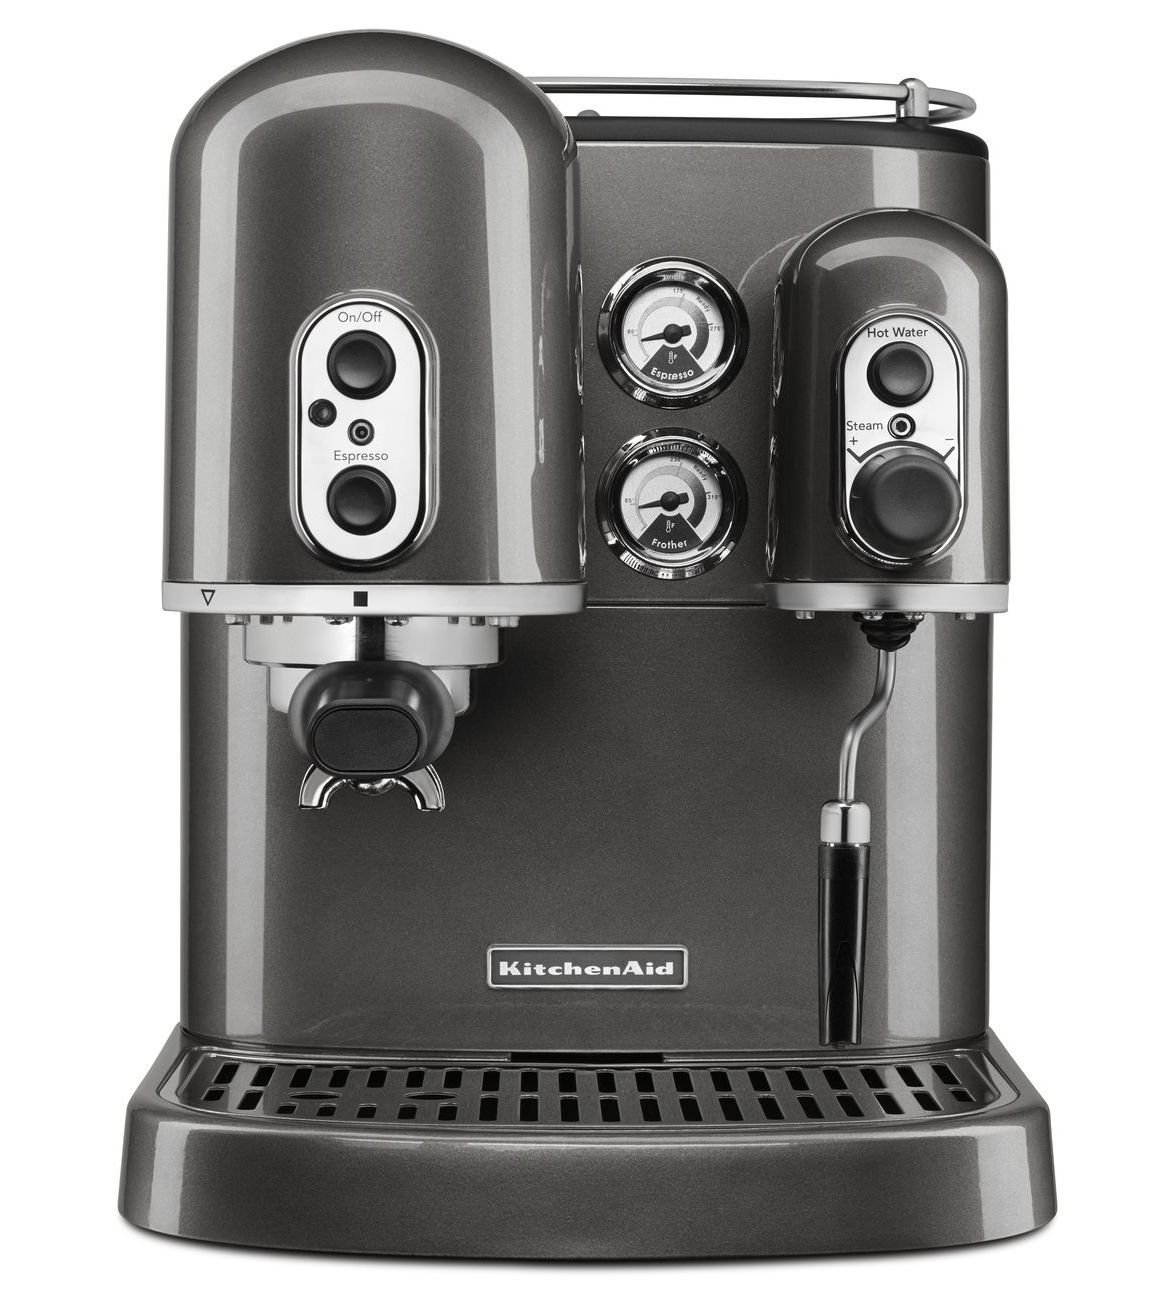 KitchenAid Pro Line Series Espresso Maker with Dual Independent Boilers, Medallion Silver (Certified Refurbished)